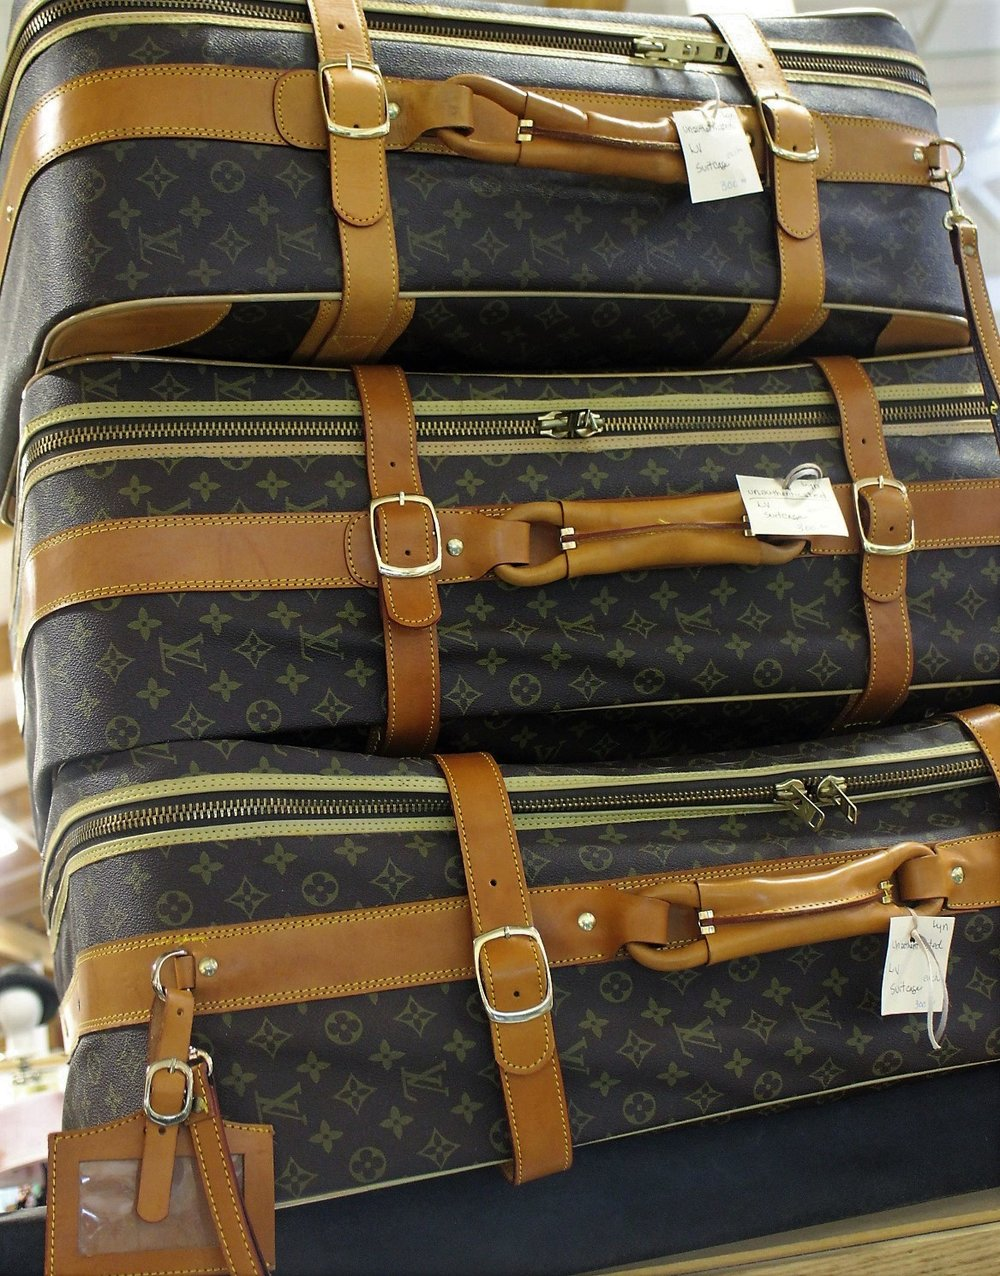 LOUIS VUITTON LUGAGE? - I don't know if they are real, but I did spot this luggage collection that claims to be Louis Vuitton at Apple Annies. Perhaps honeymoon luggage to jet off to that beautiful tropical paradise you've always wanted to go to?Each piece is priced at $300.